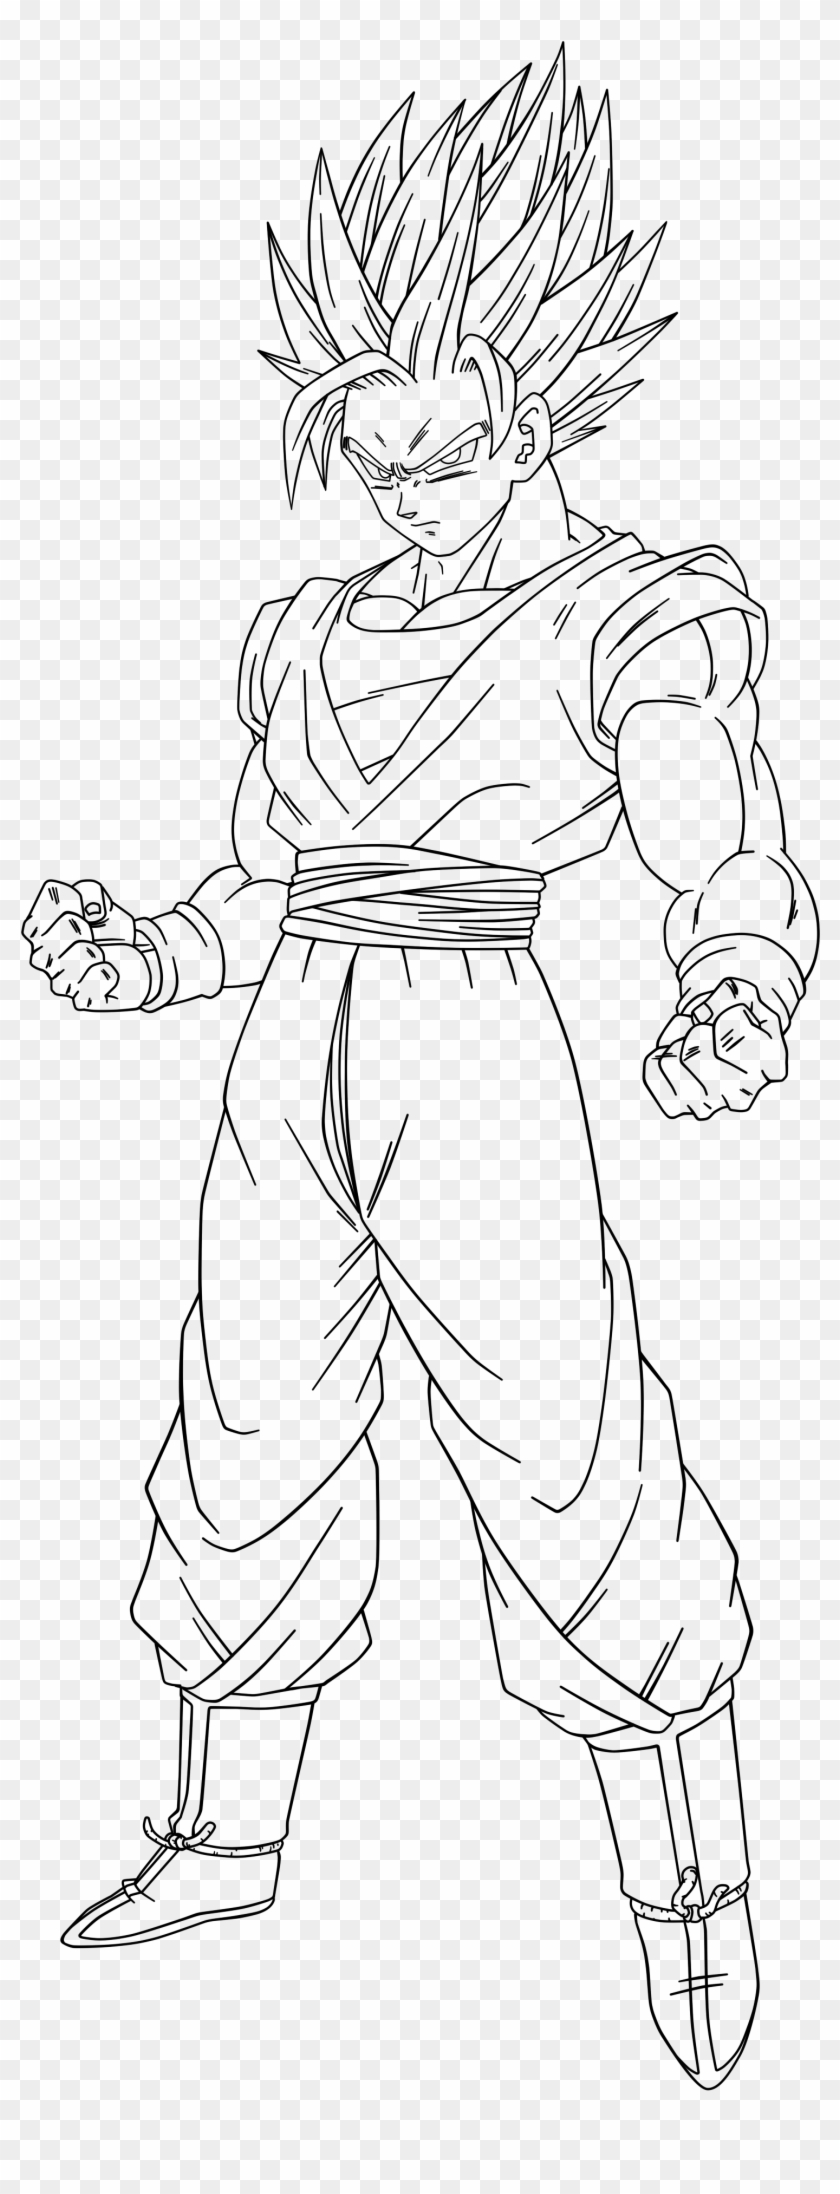 Collection Of Free Forearm Drawing Buff Download On Dragon Ball Z Goku Full Body Drawing Clipart 3777966 Pikpng